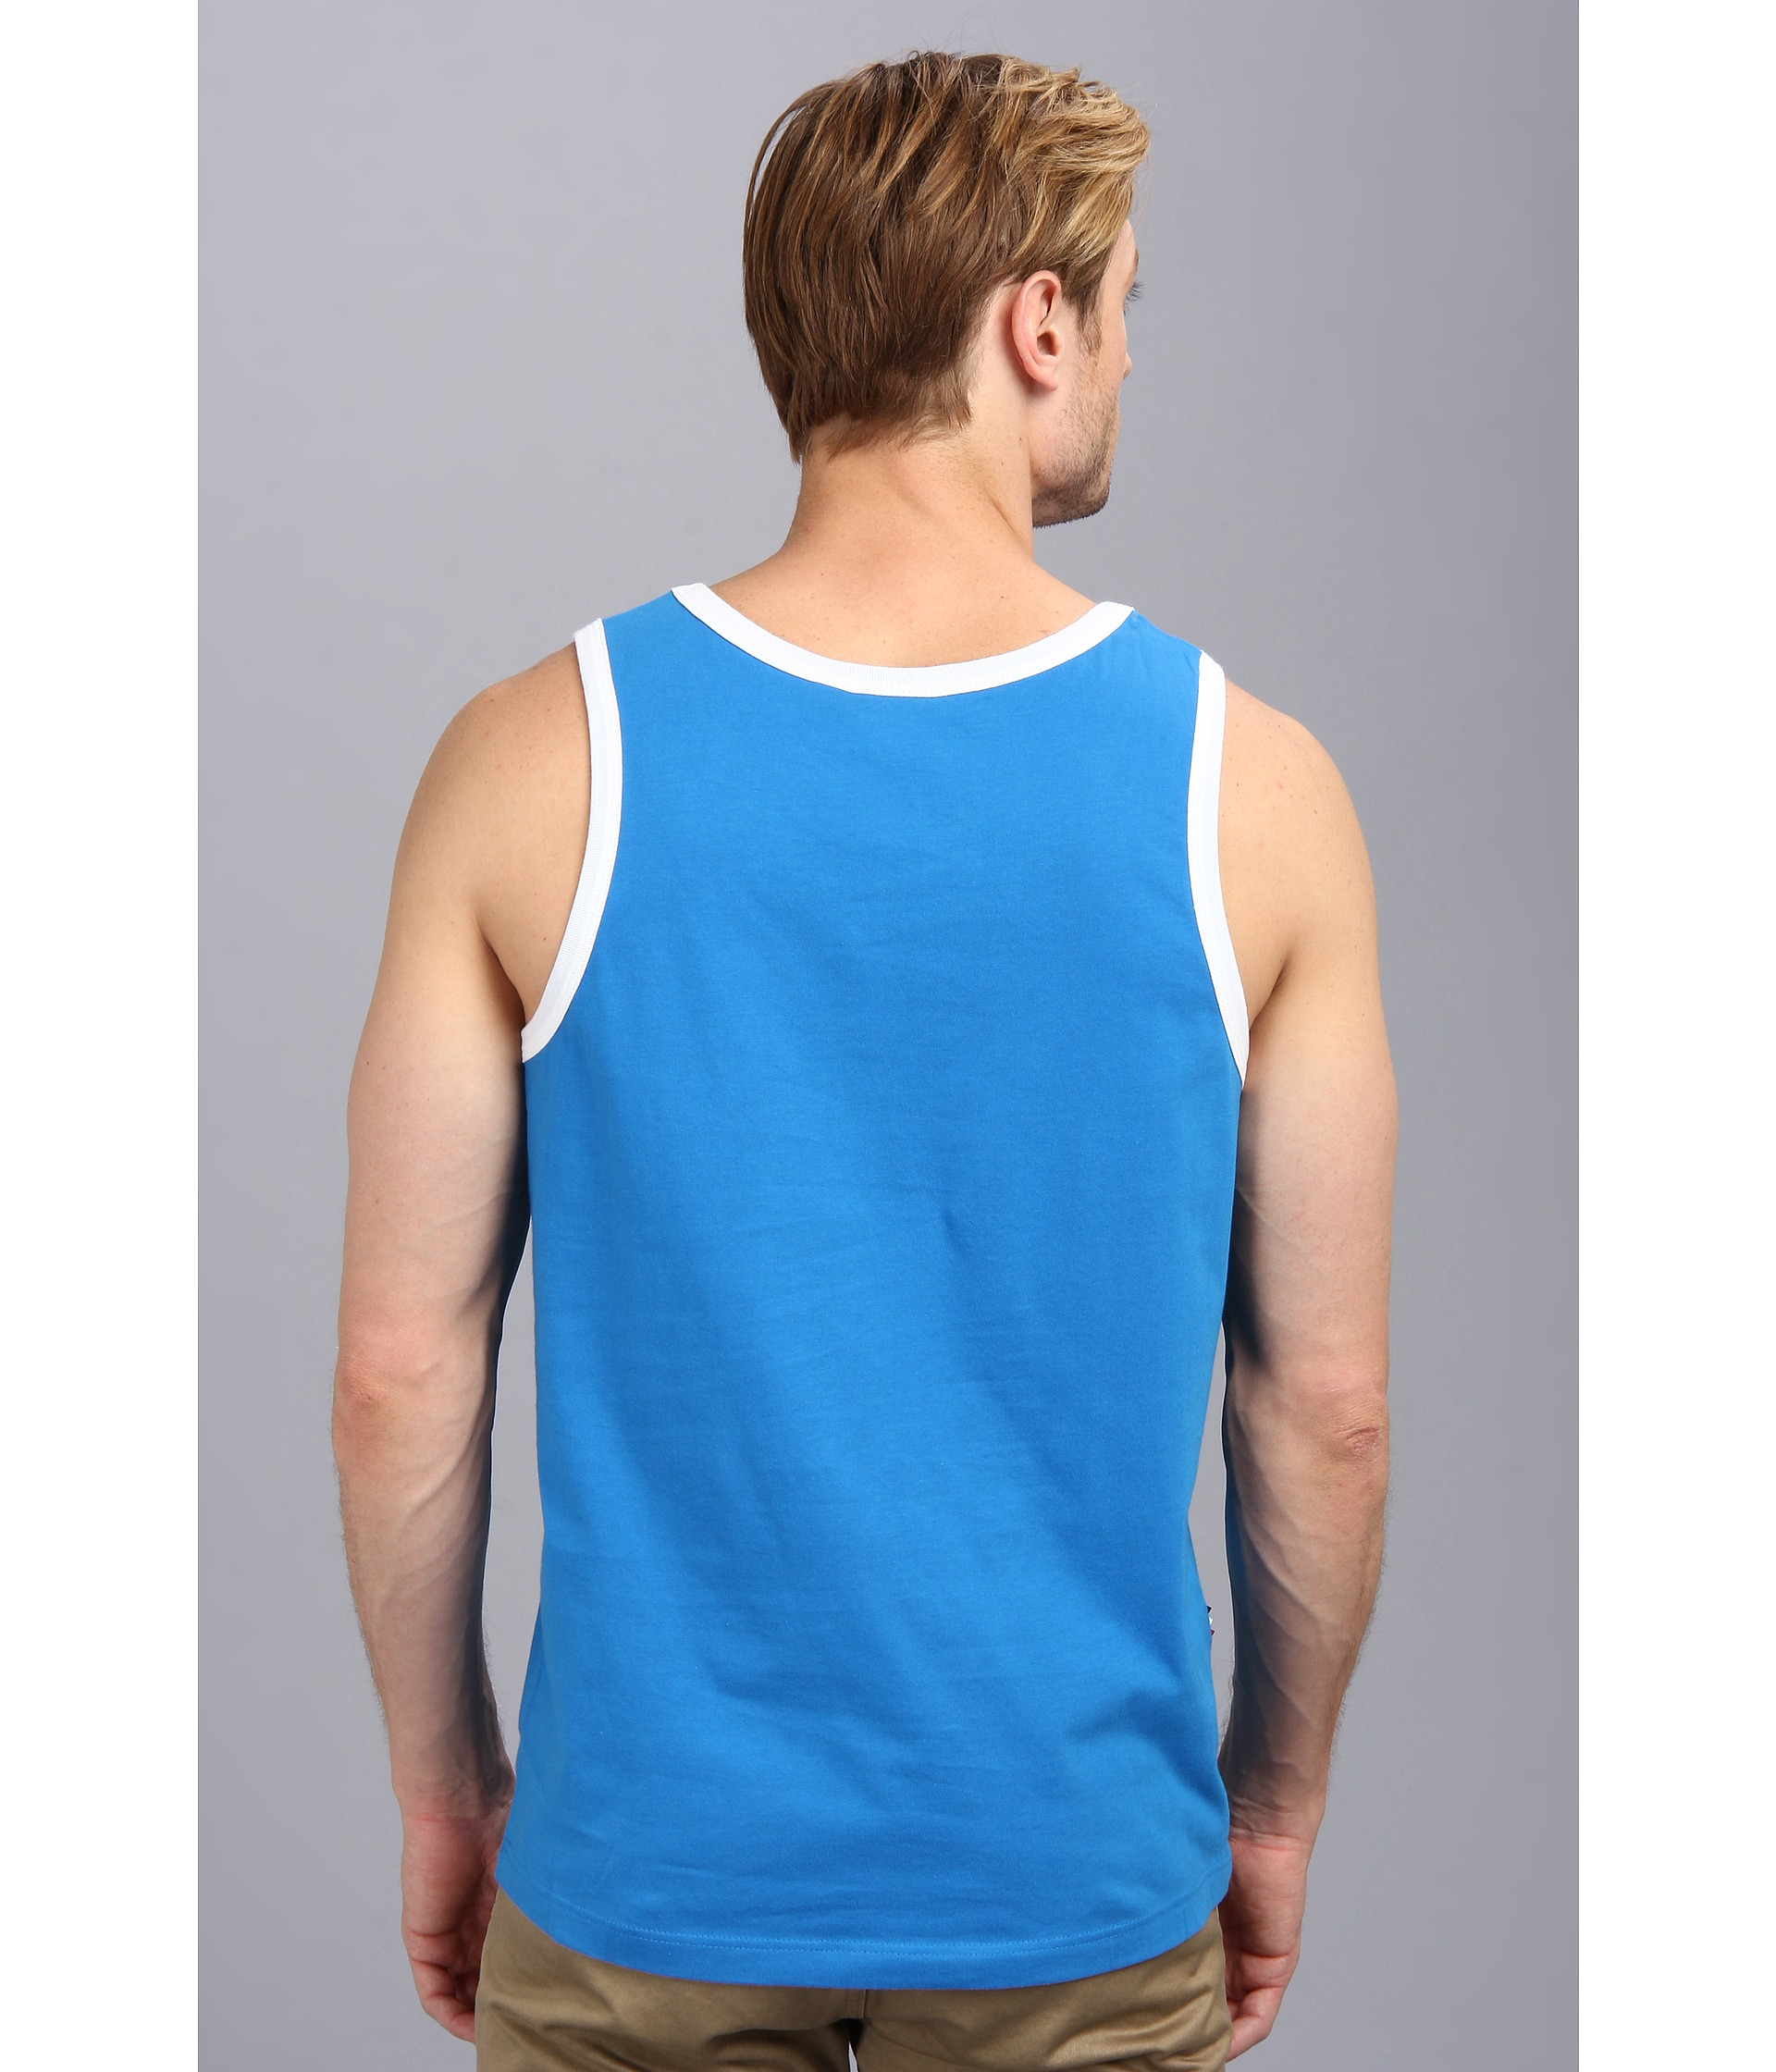 6480990c39ba3 Lyst - Lacoste Live Cotton Jersey with Contrast Trim Tank Top in Blue for  Men